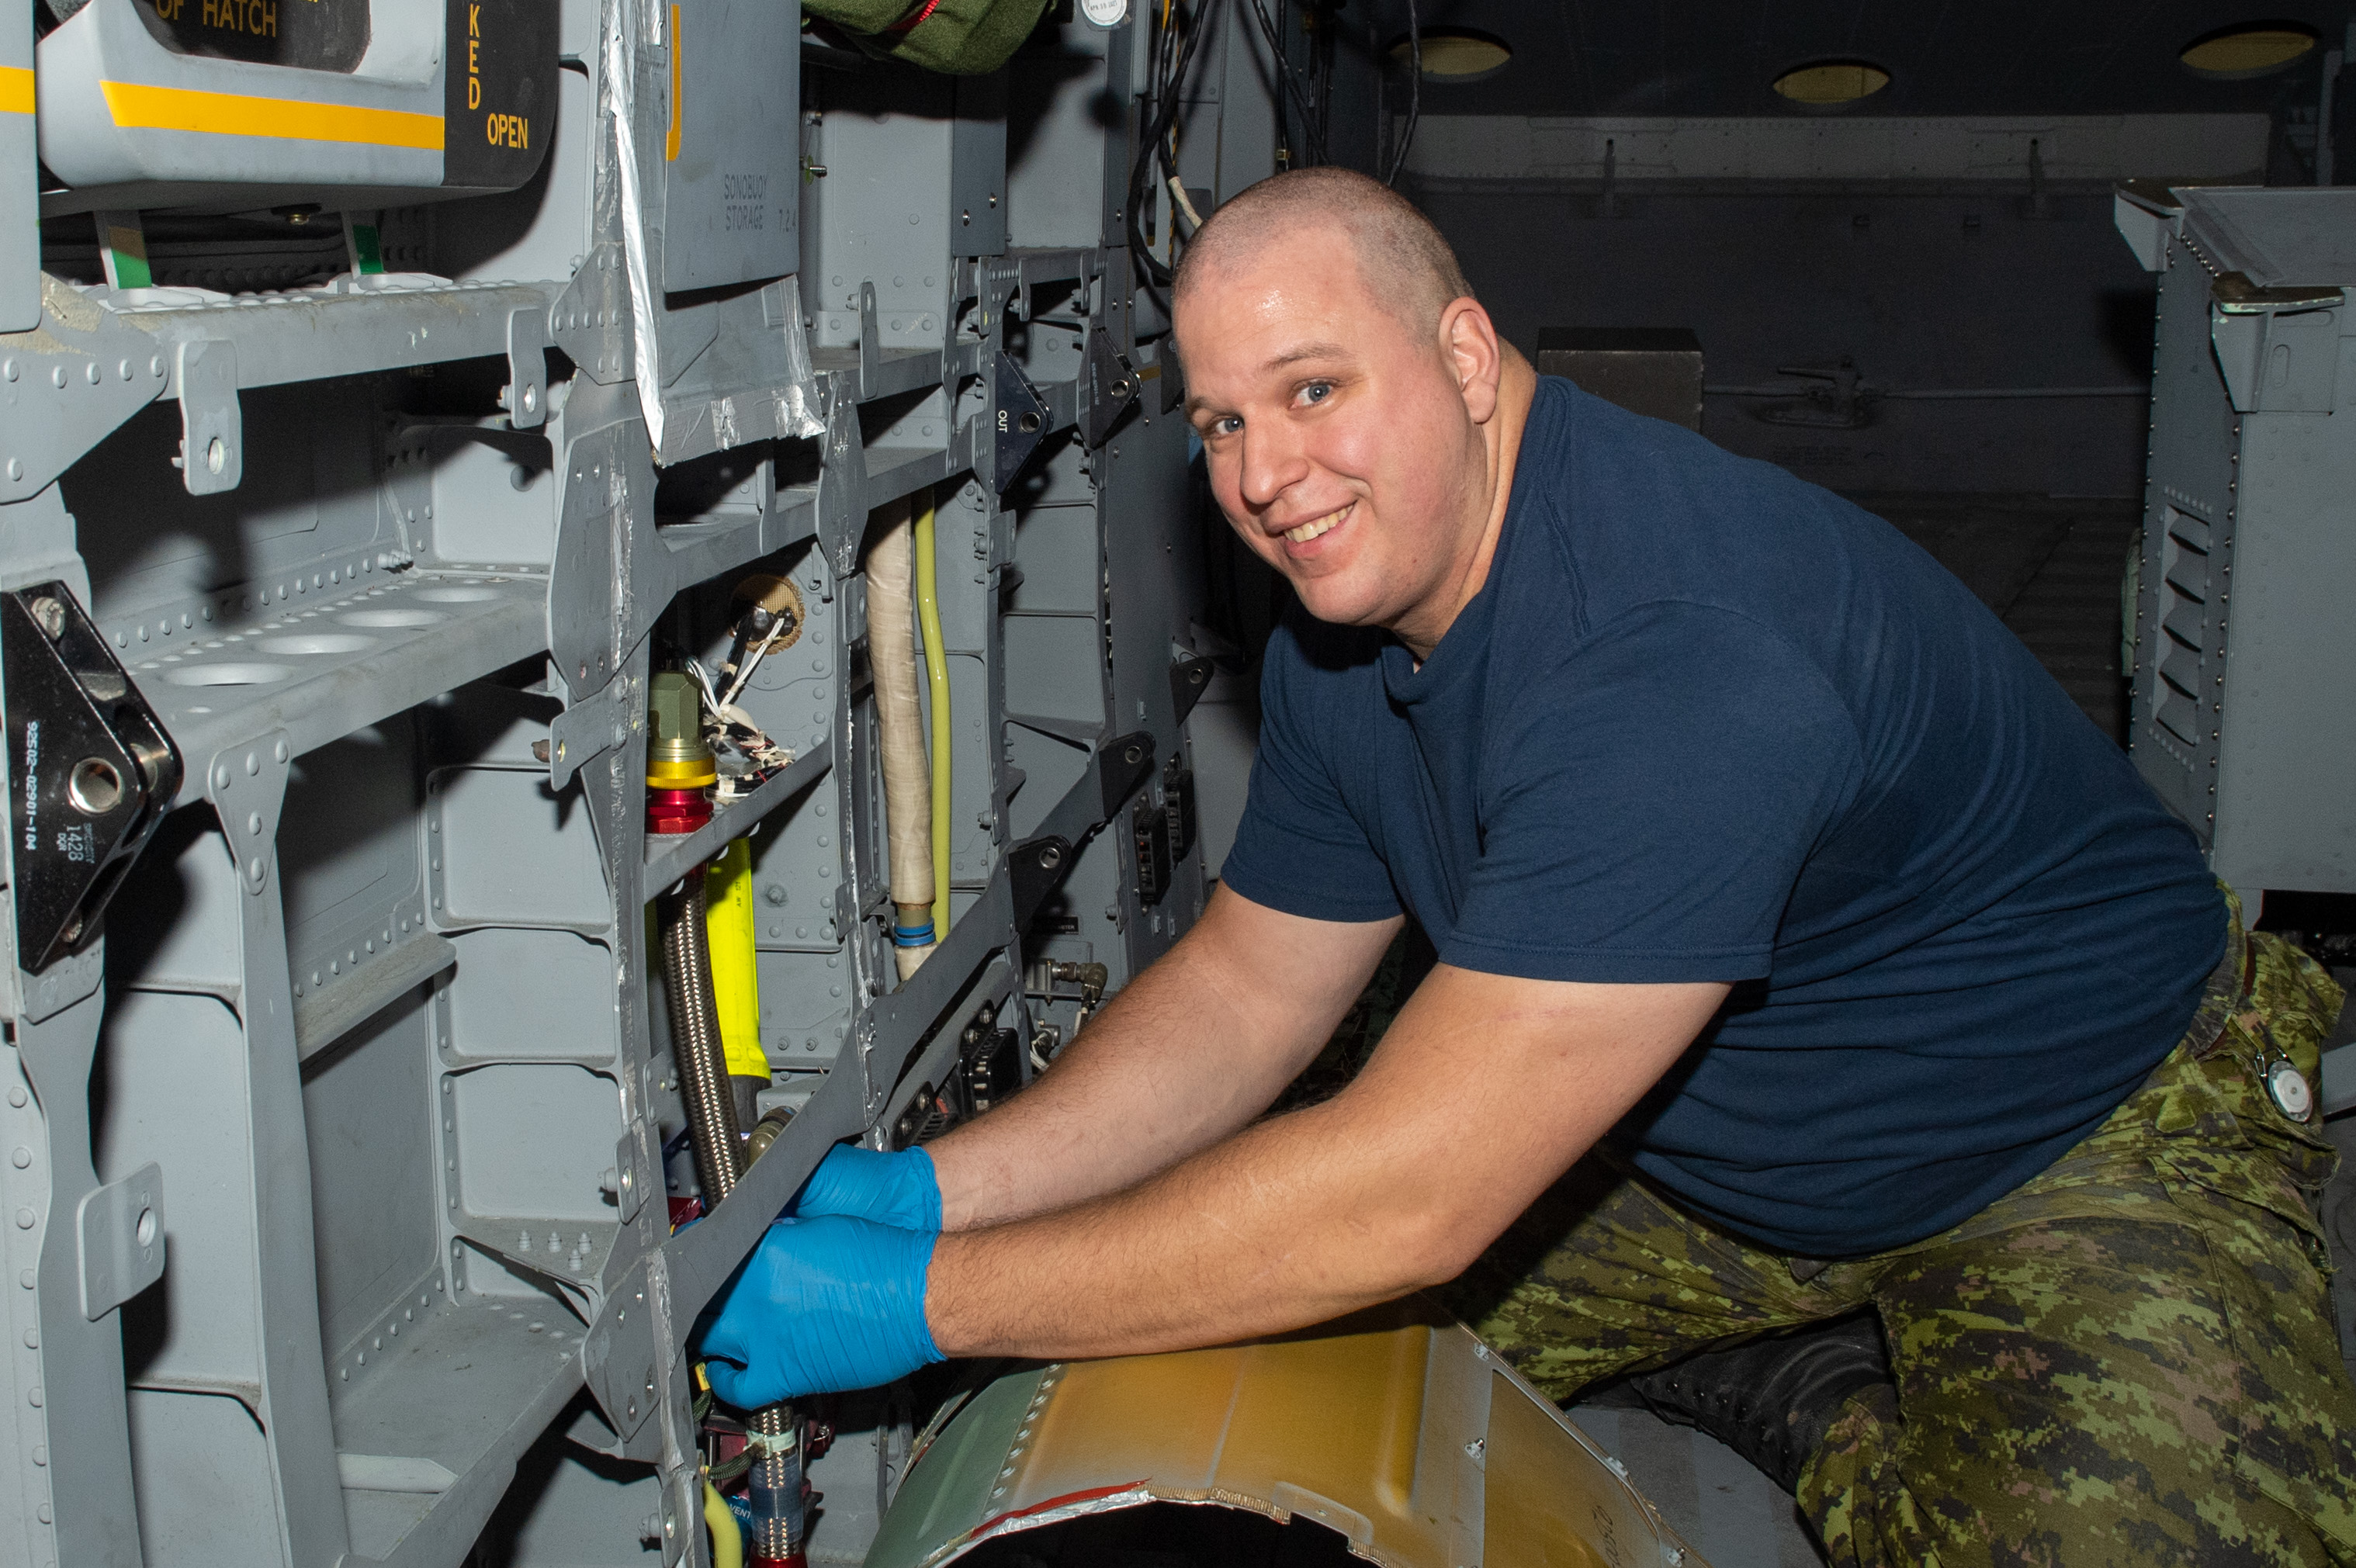 A smiling man wearing a dark blue t-shirt and camouflage pants works on a helicopter.